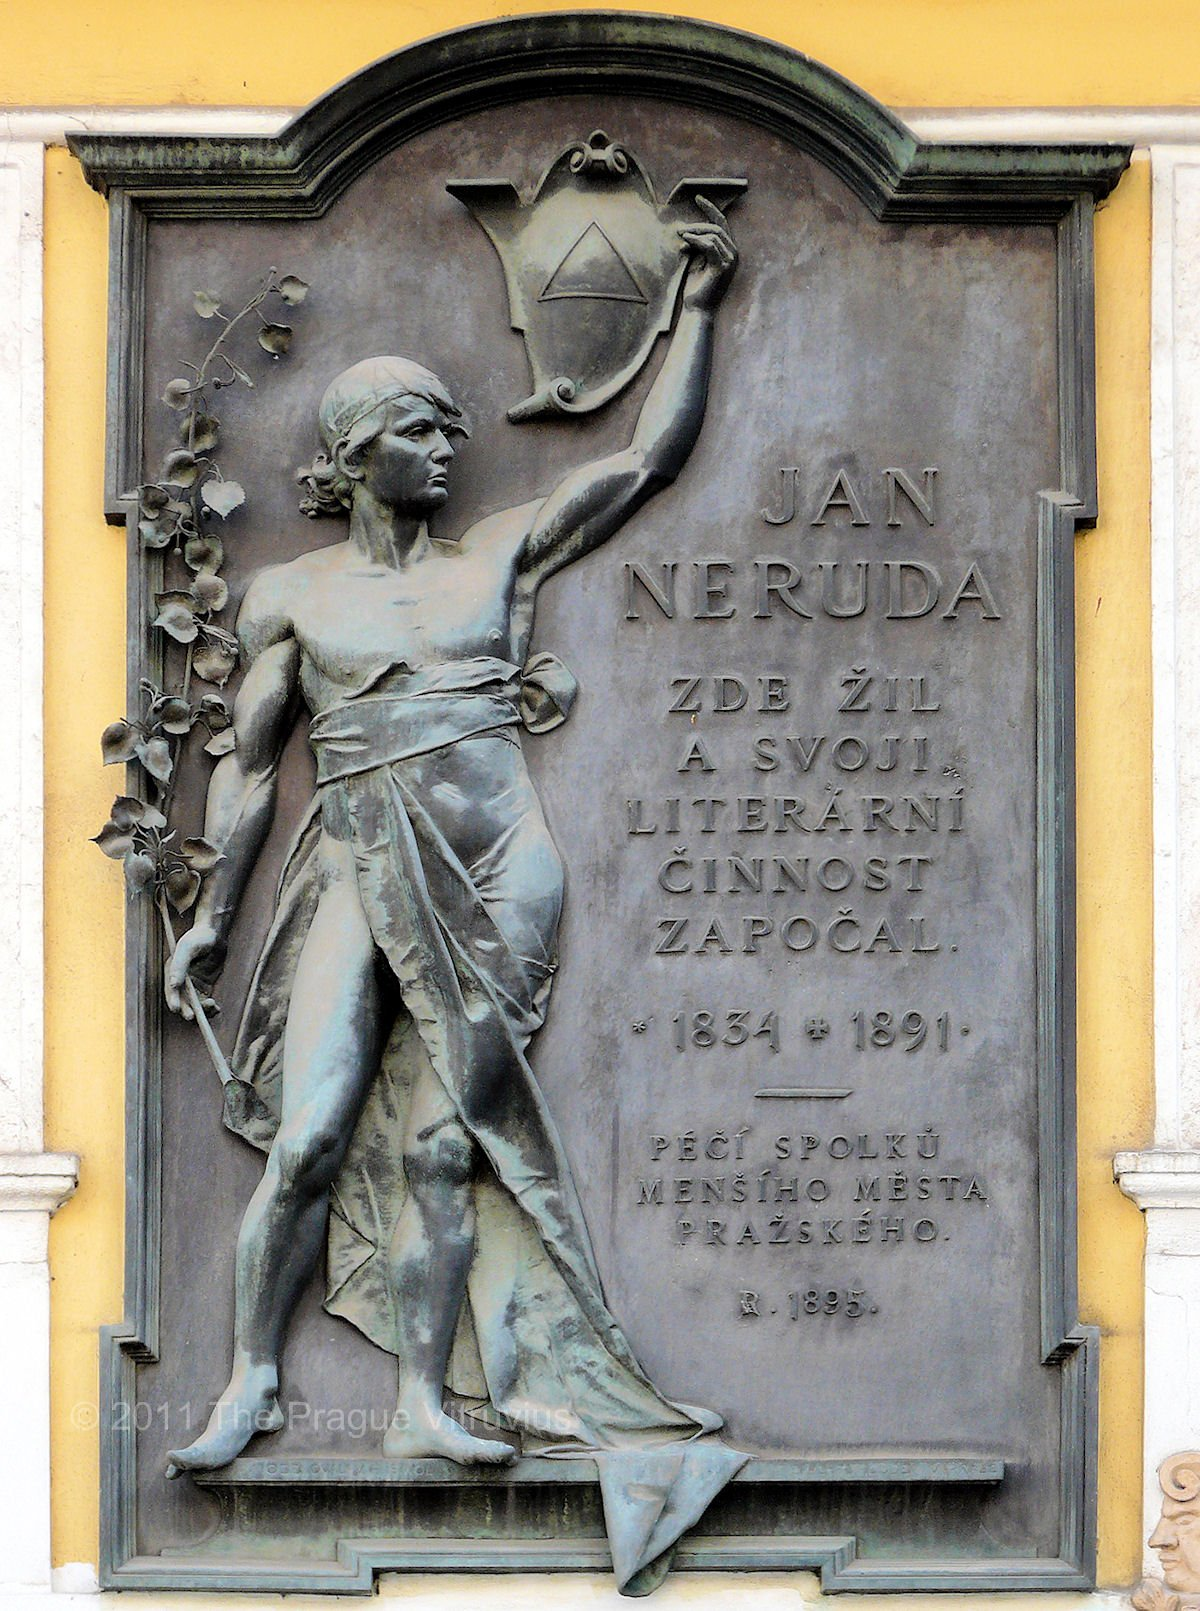 Neruda monument in Prague